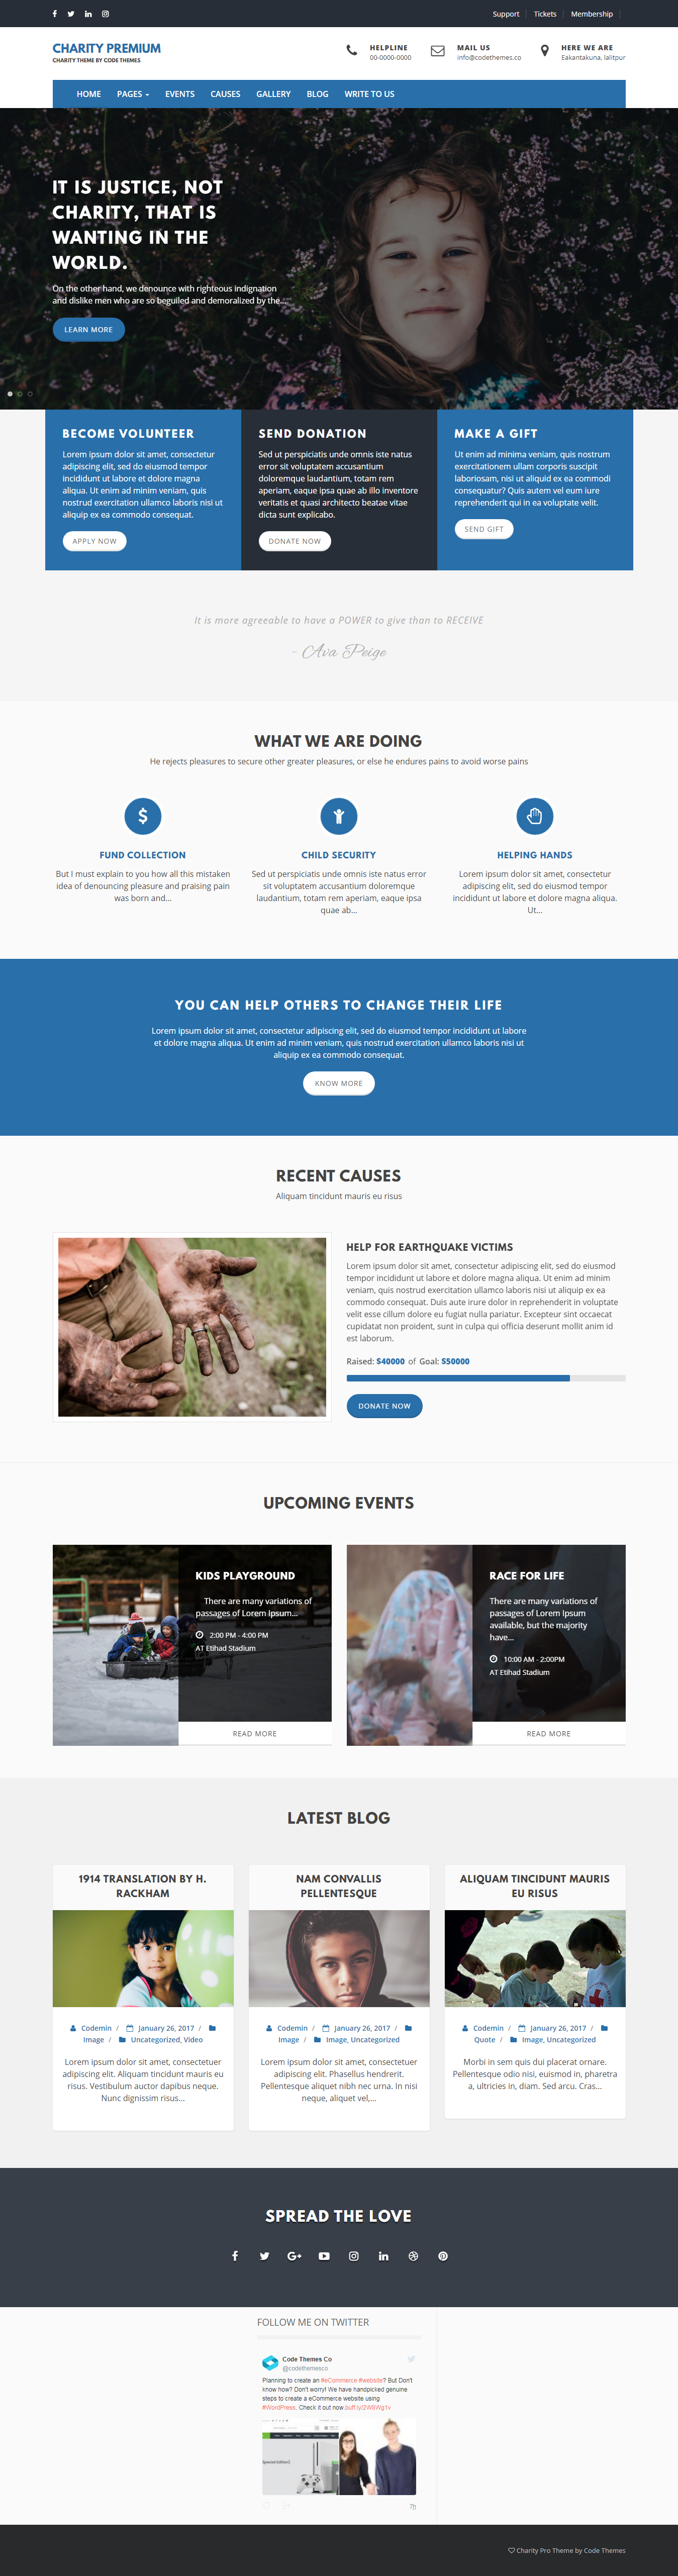 Charity Review - Best Free Review WordPress Theme